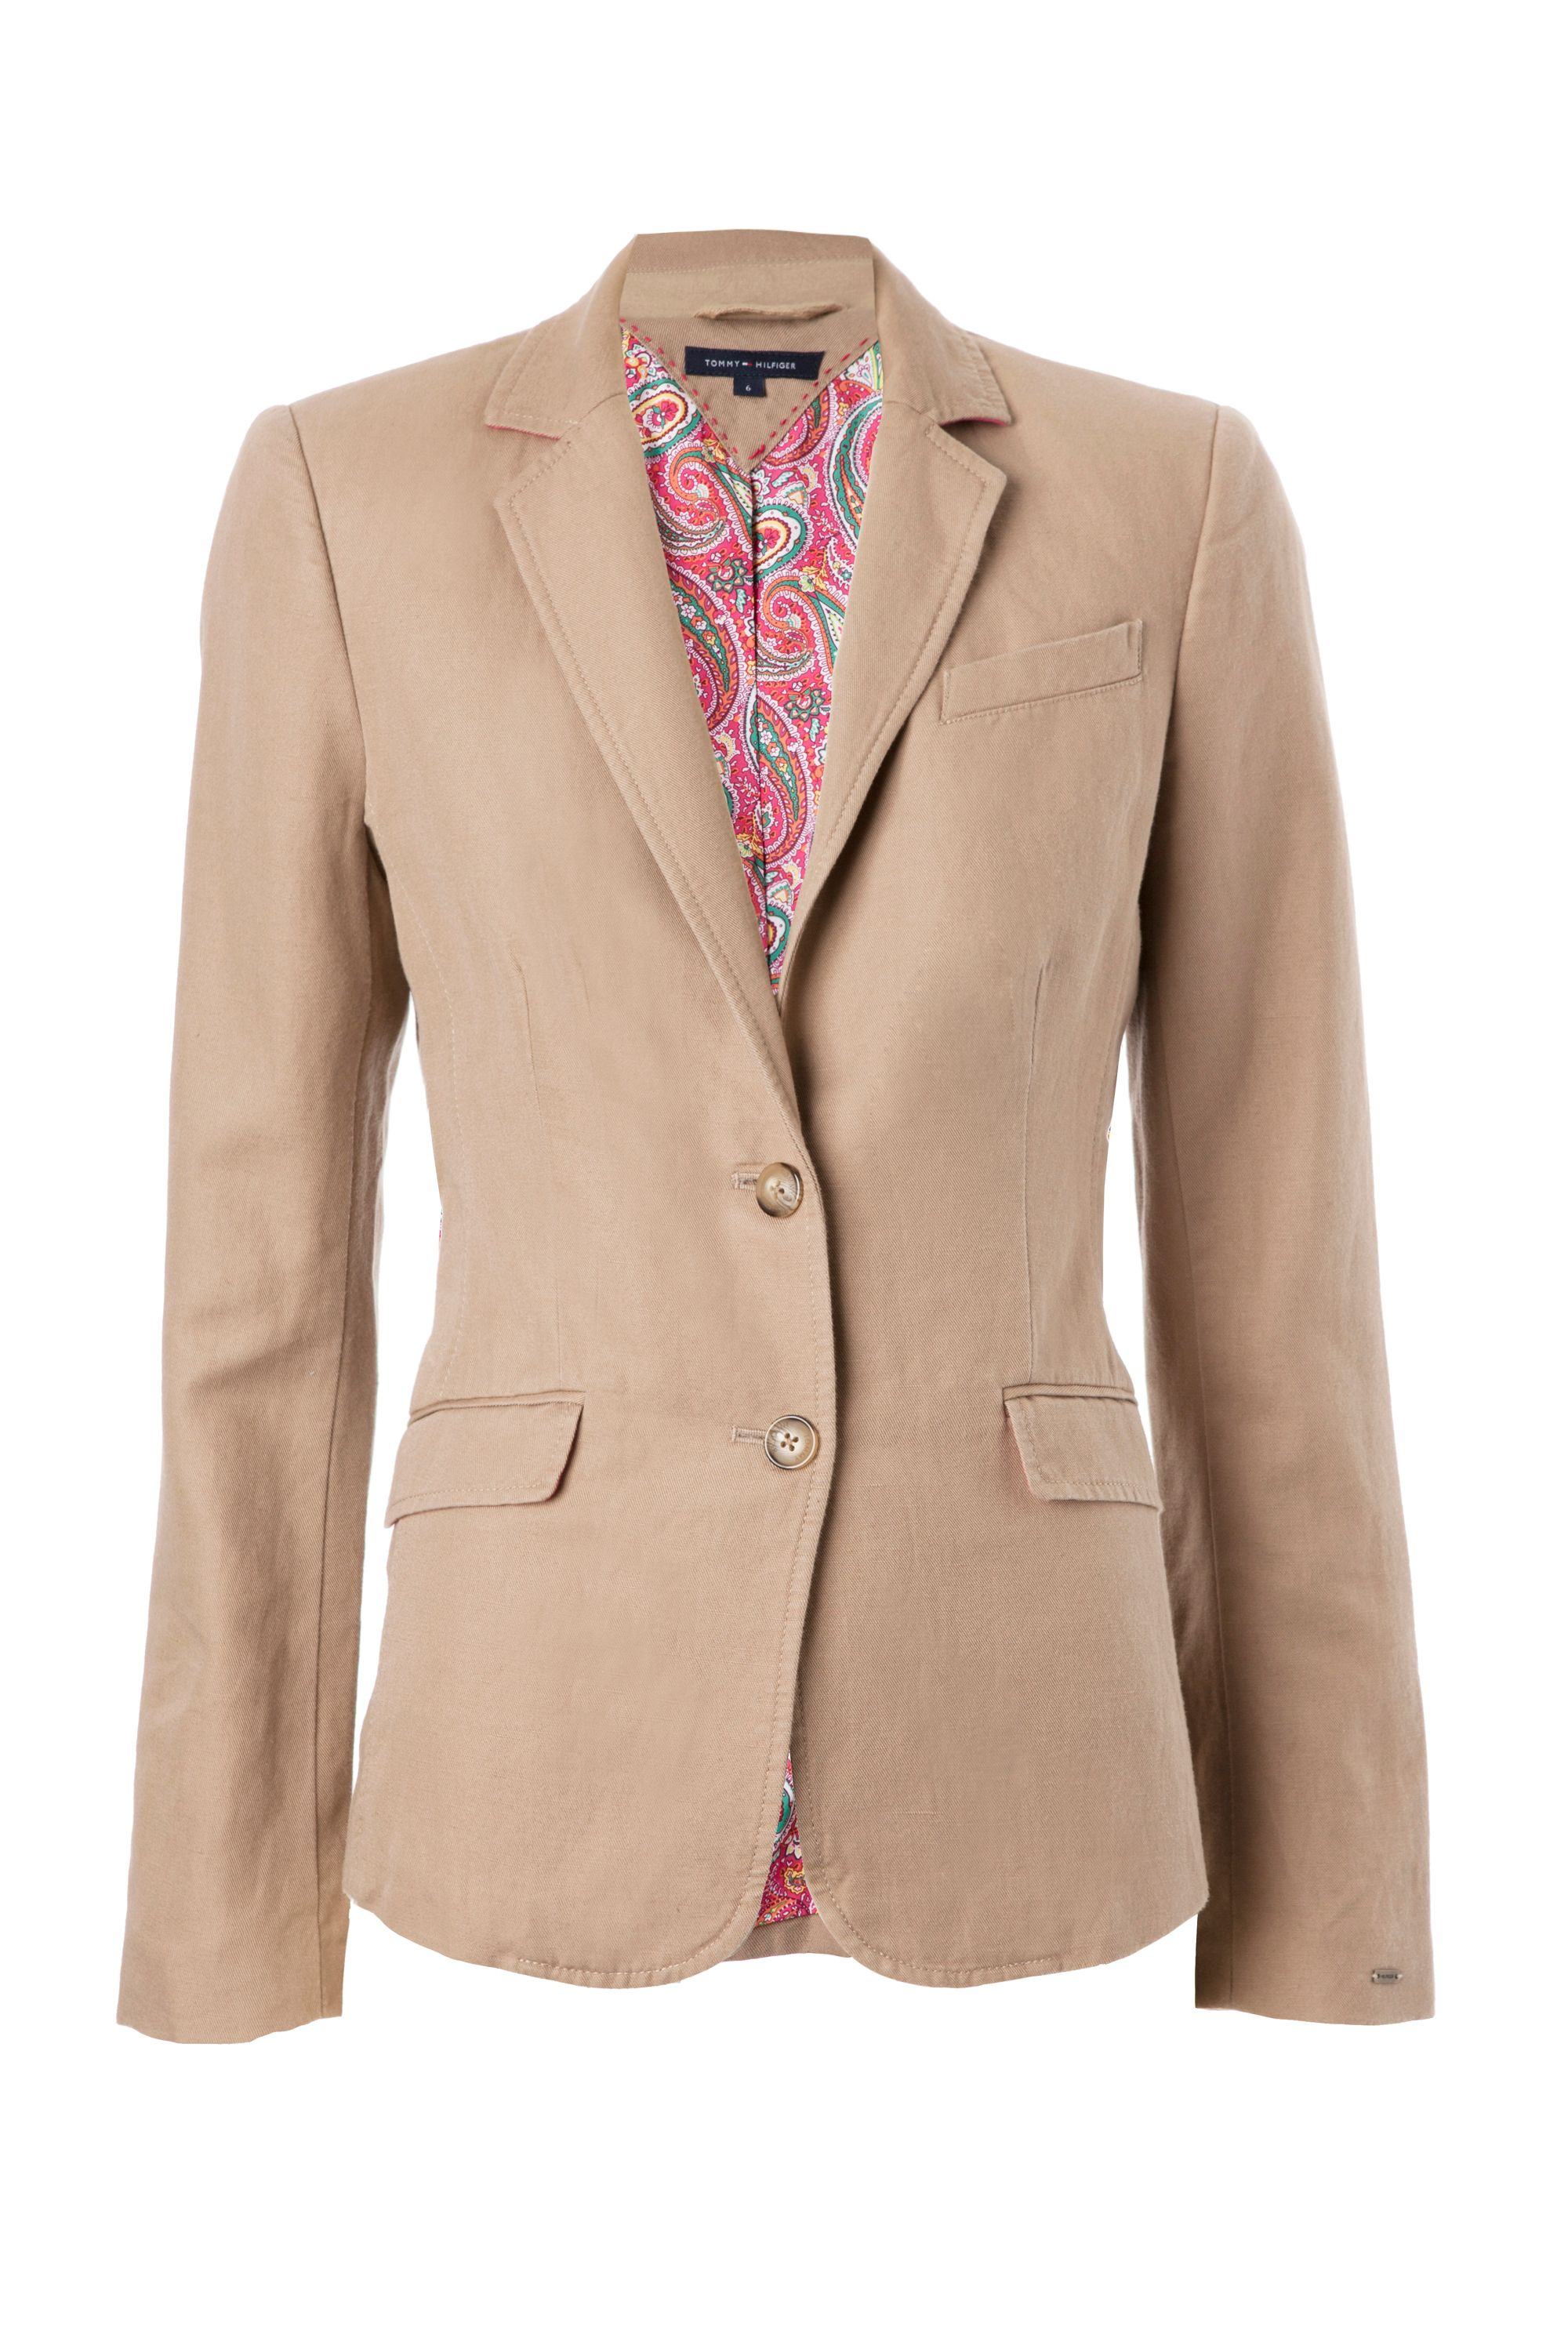 Rianna new york blazer